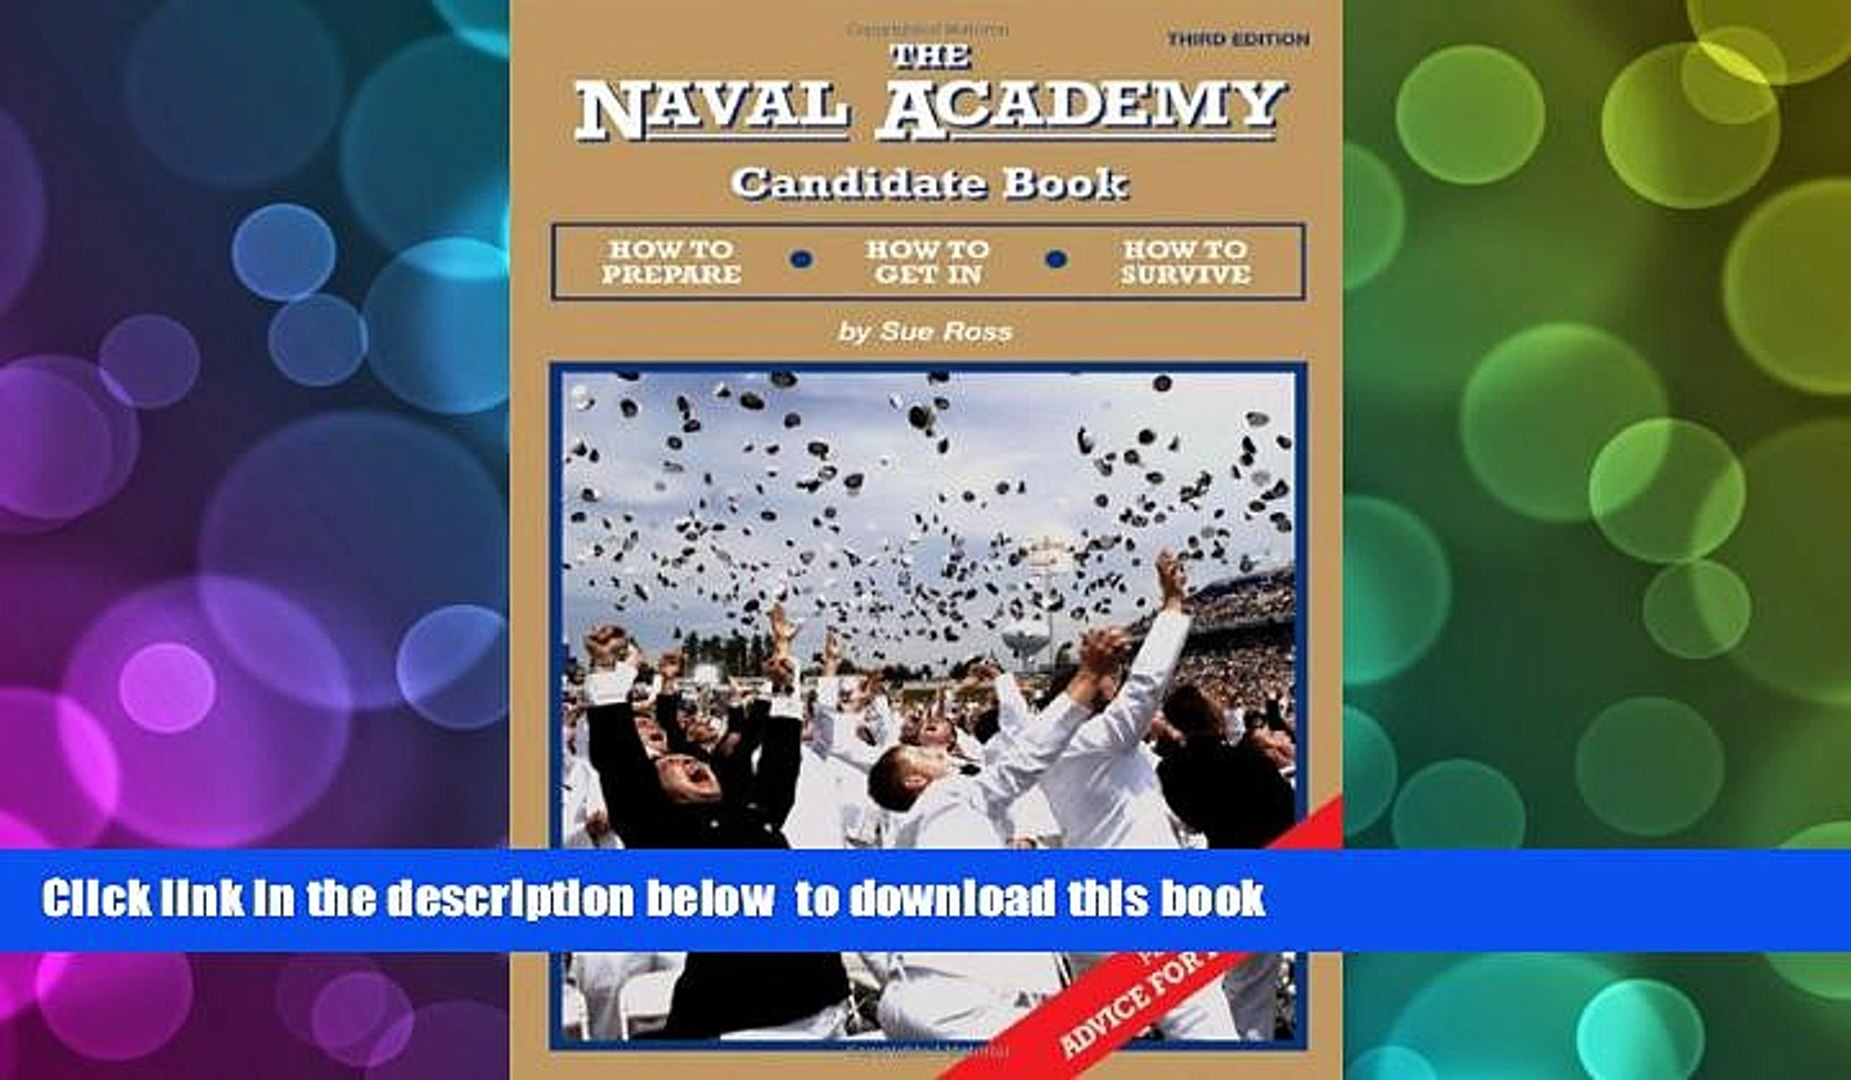 PDF [DOWNLOAD] The Naval Academy Candidate Book:  How to Prepare, How to Get In, How to Survive